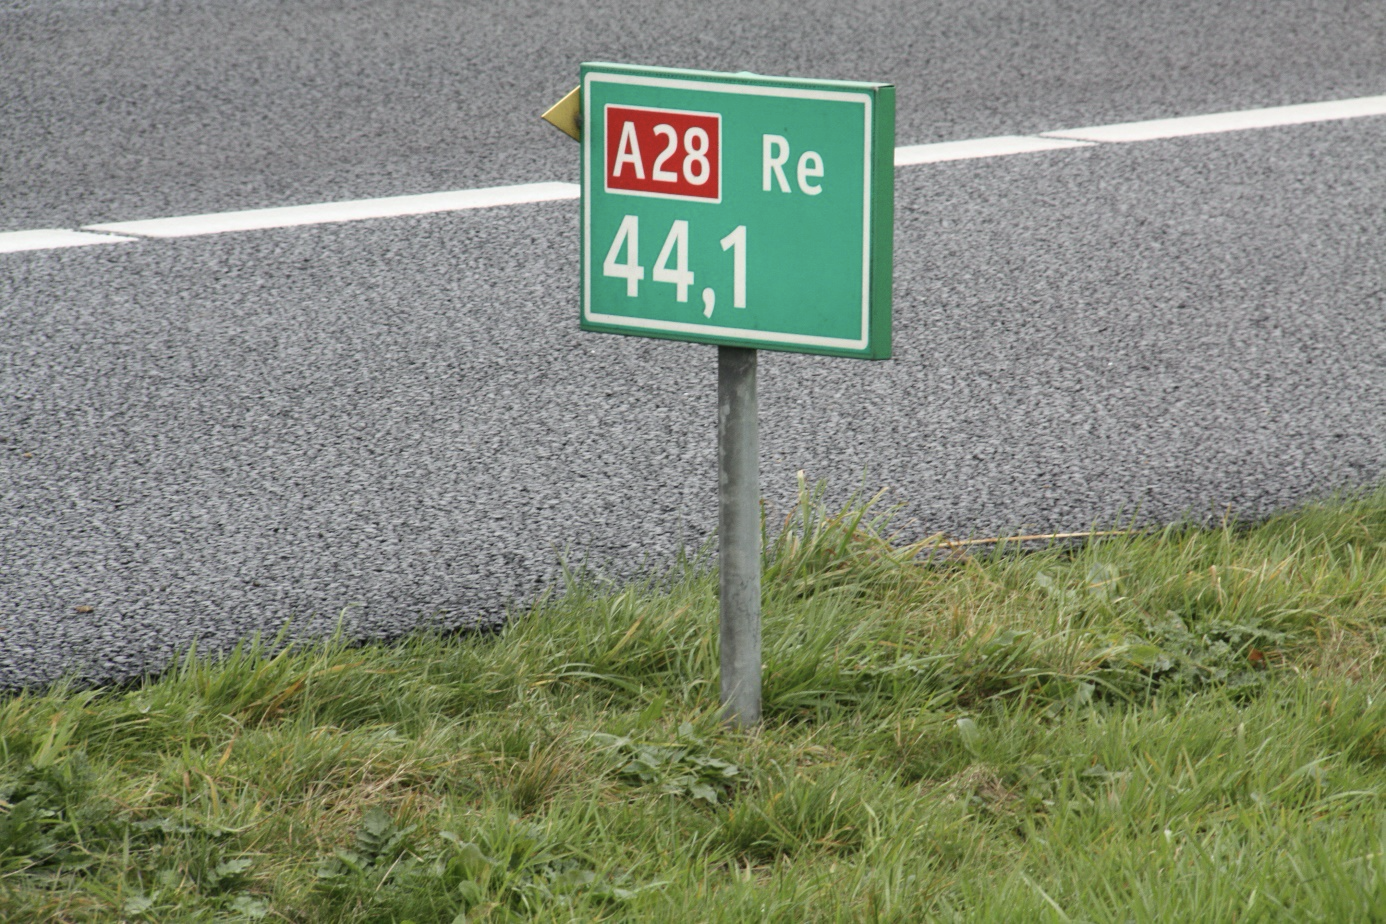 A hectometre sign detailing key road information.